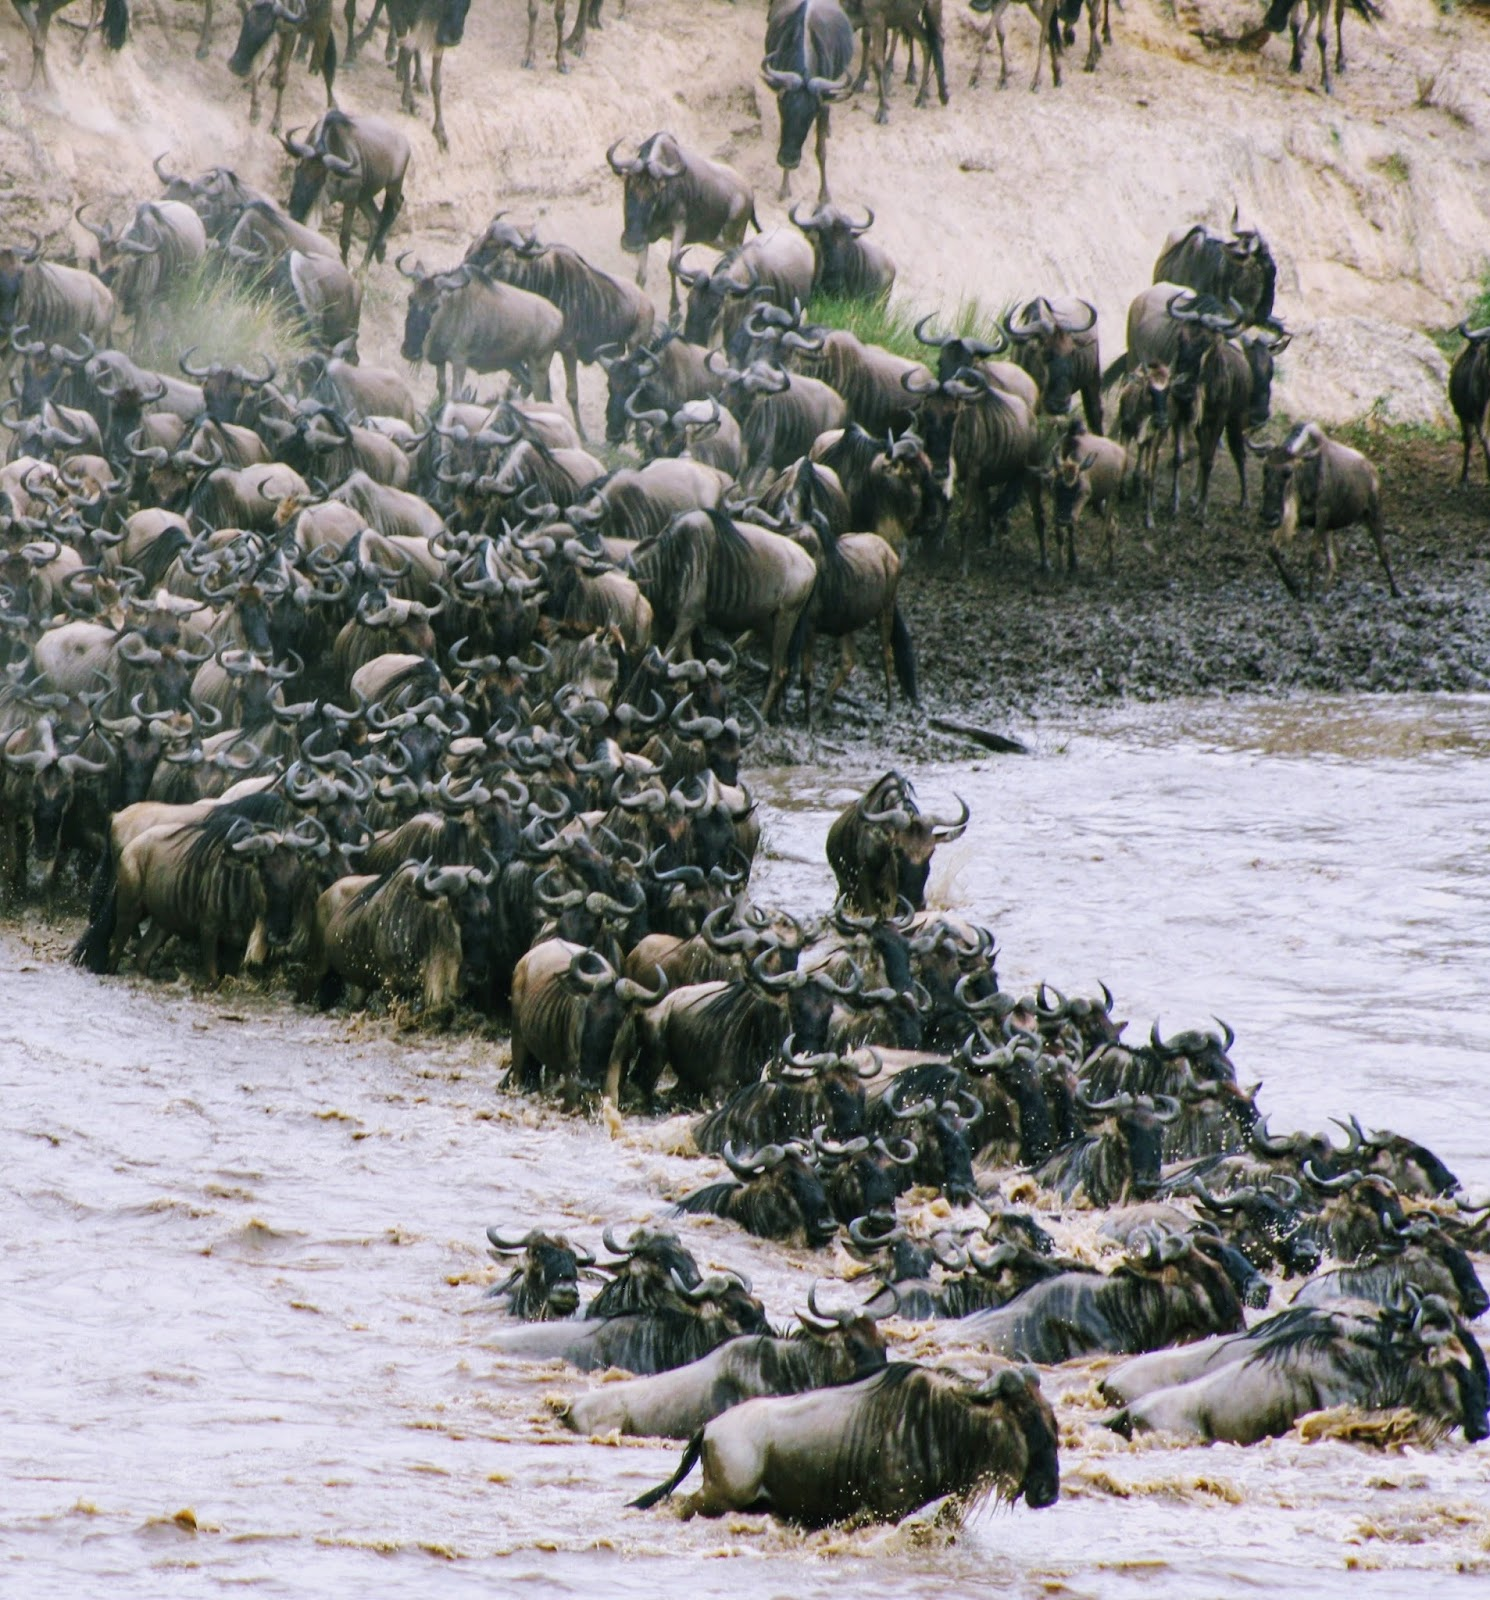 Picture of wildebeest migration.